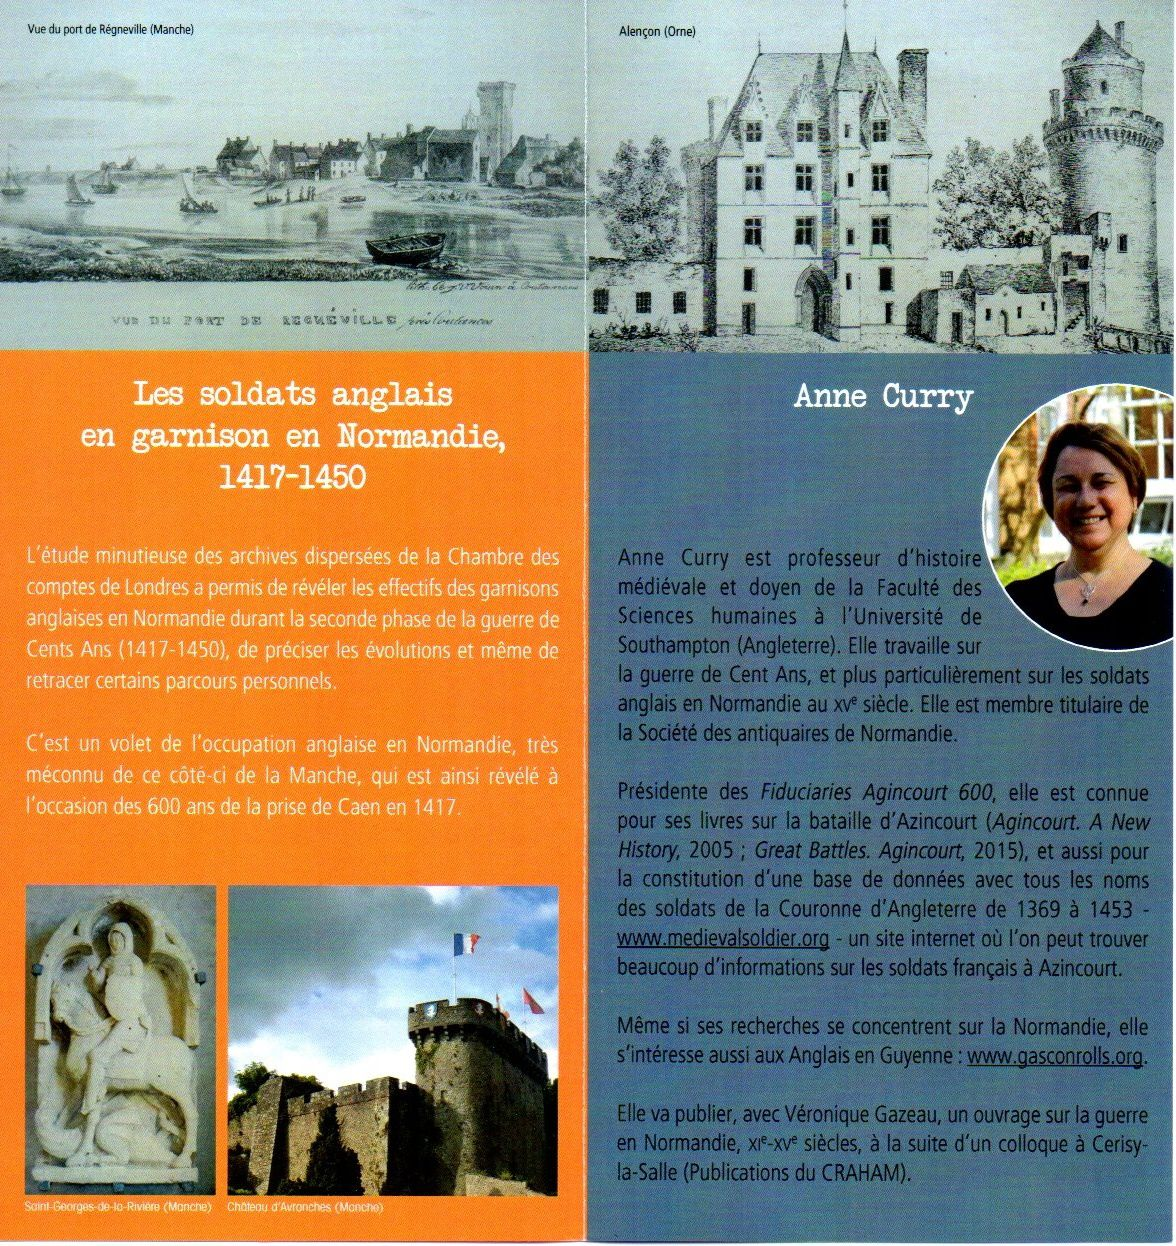 &quot&#x3B;LES SOLDATS ANGLAIS EN GARNISON EN NORMANDIE, 1417-1450&quot&#x3B;, CONFERENCE D'ANNE CURRY, CAEN, 2 SEPTEMBRE 2017,